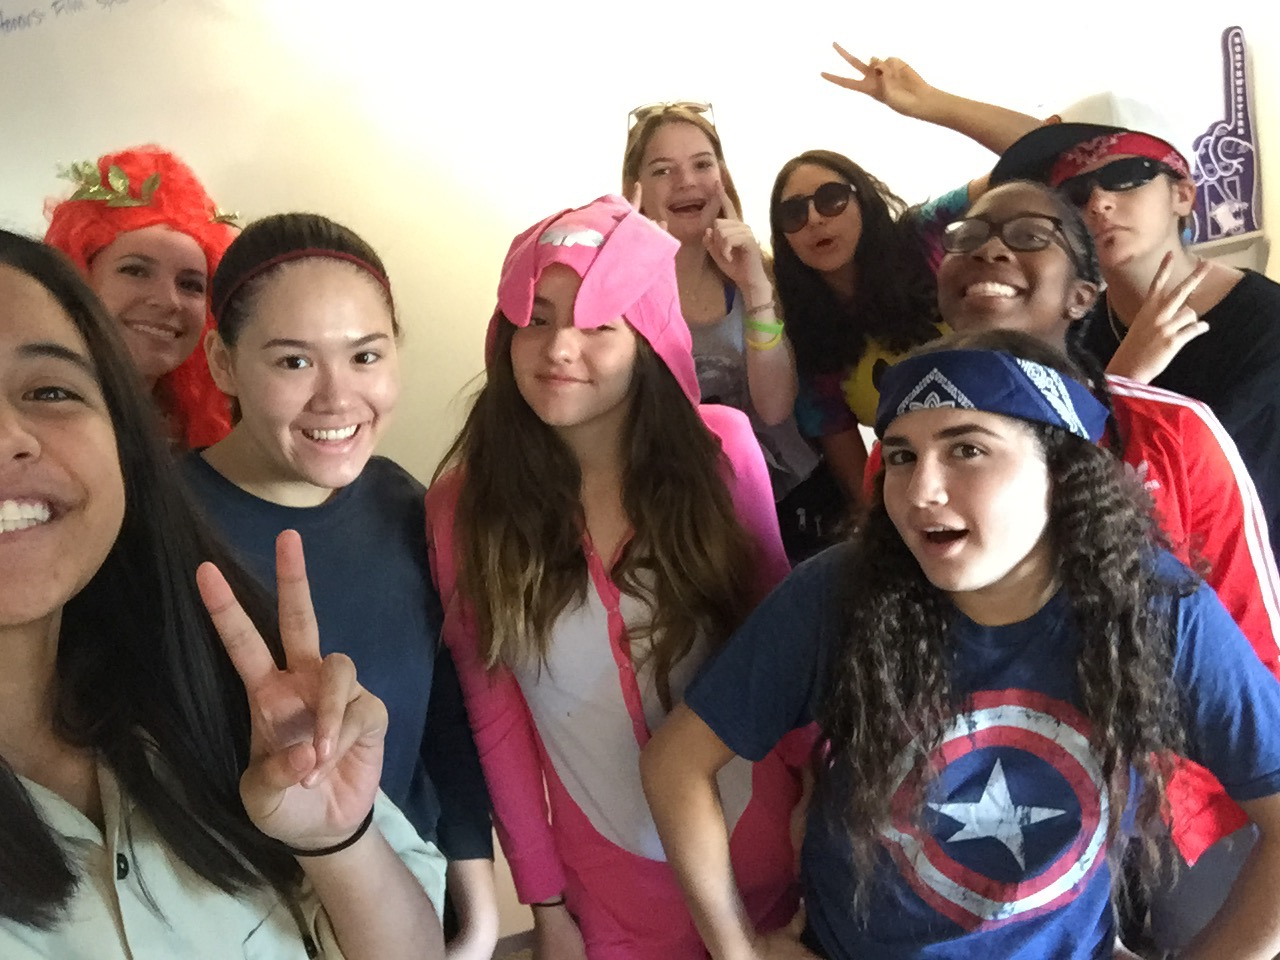 Danielle Roberts, Jenn Babin, Cybele Zhang, Meagan Rowles, Gracie Marx, Jael Ellman, Sophie Evans-Katz, Kamryn Bellamy and Macoy Olhbaum pose during advisory on Halloween in 2015. Babin has been Class Dean of 2018 since 2014, but will be taking on the role of Dean of Students in the fall. Image courtesy of Cybele Zhang.